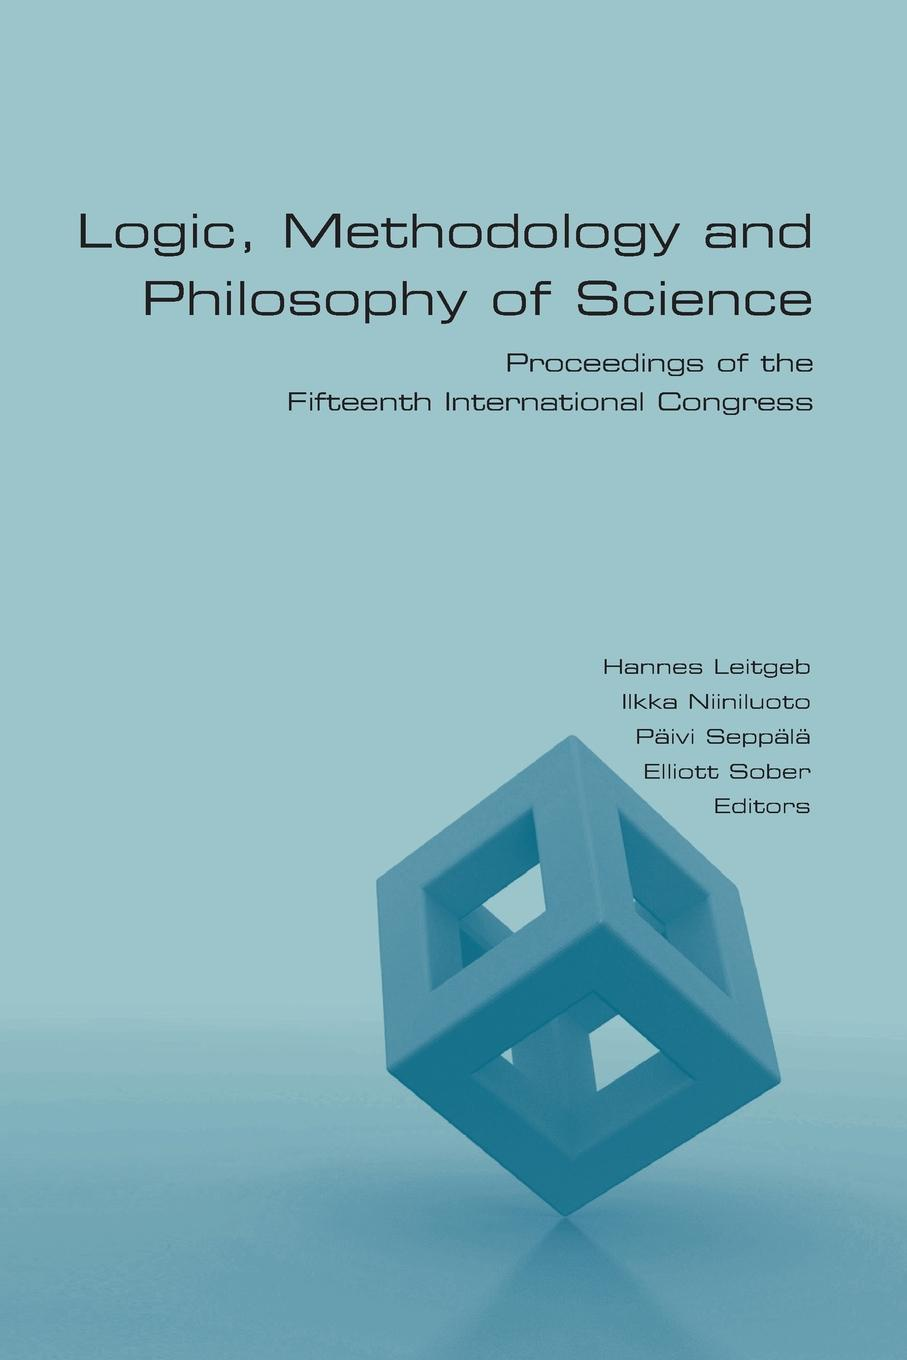 Logic, Methodology and Philosophy of Science. Proceedings of the Fifteenth International Congress foundations of the formal sciences vii bringing together philosophy and sociology of science